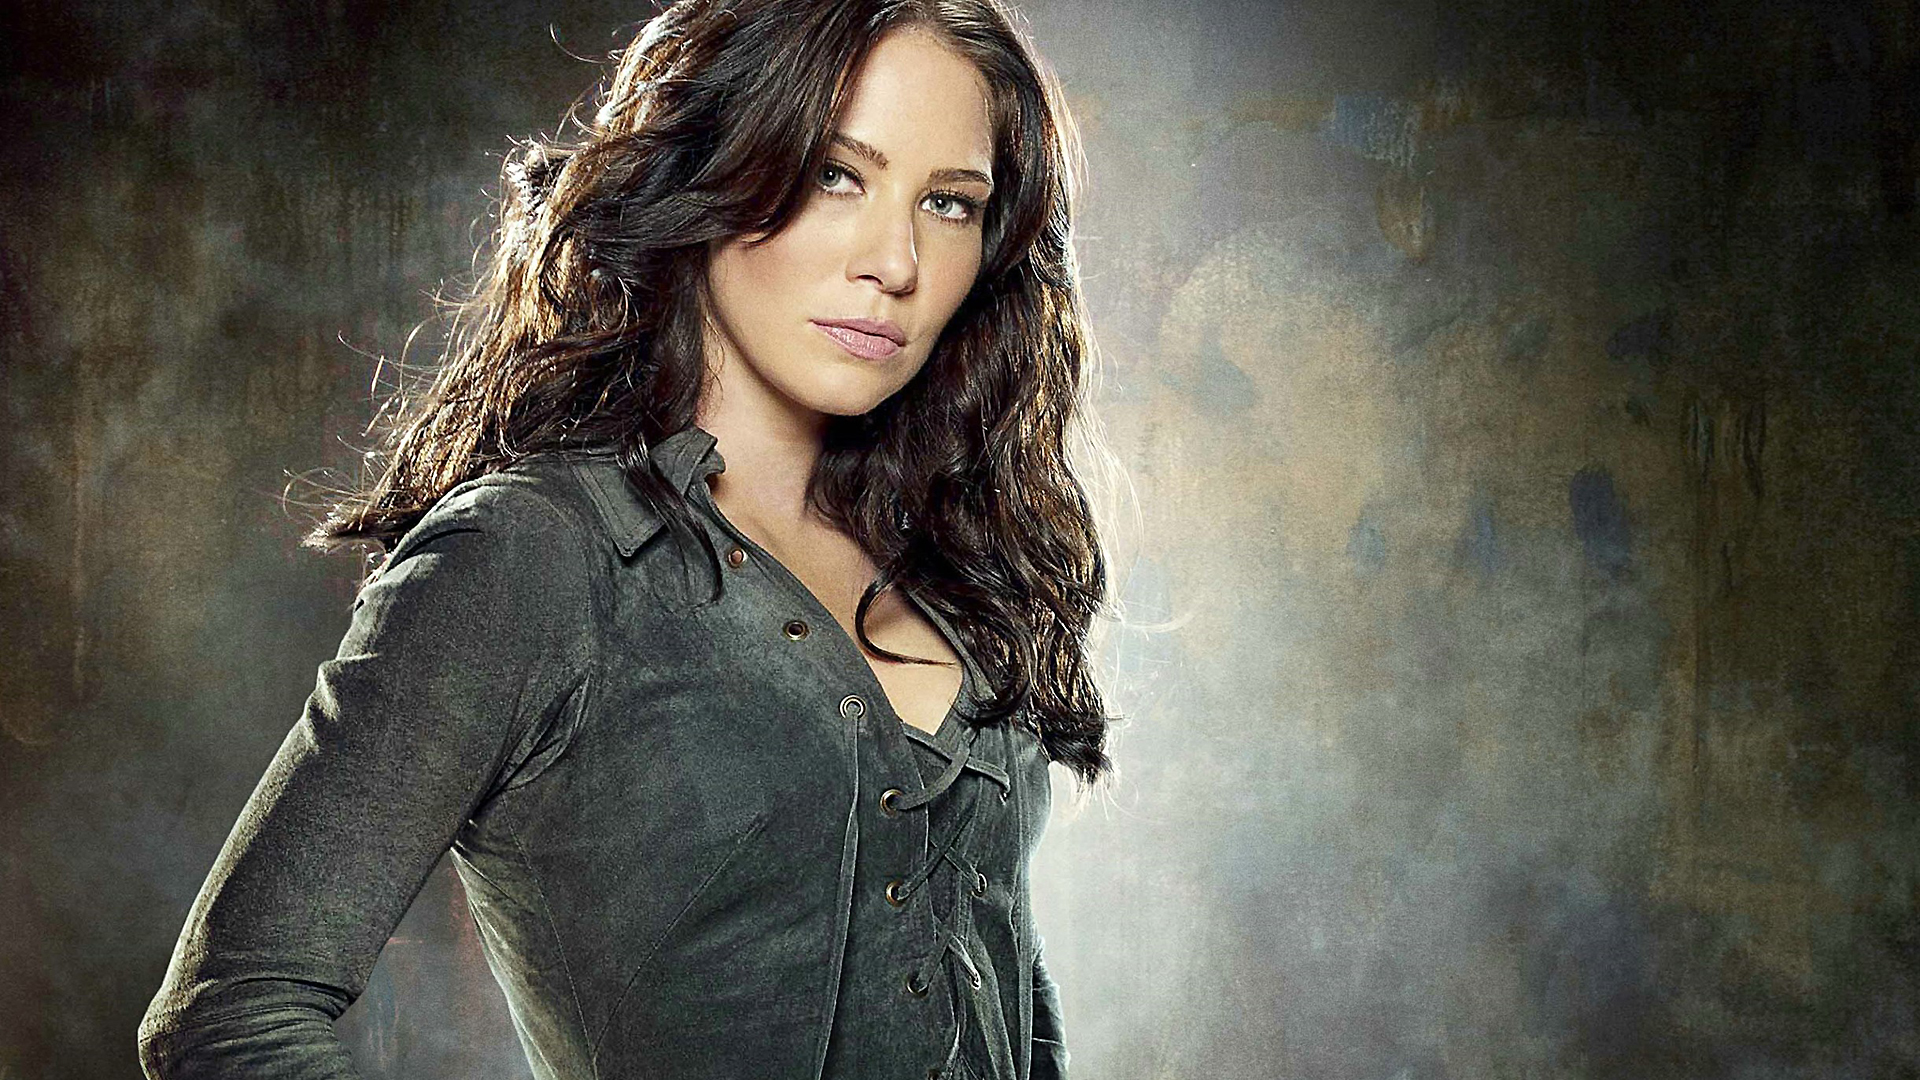 lynn collins wallpaper